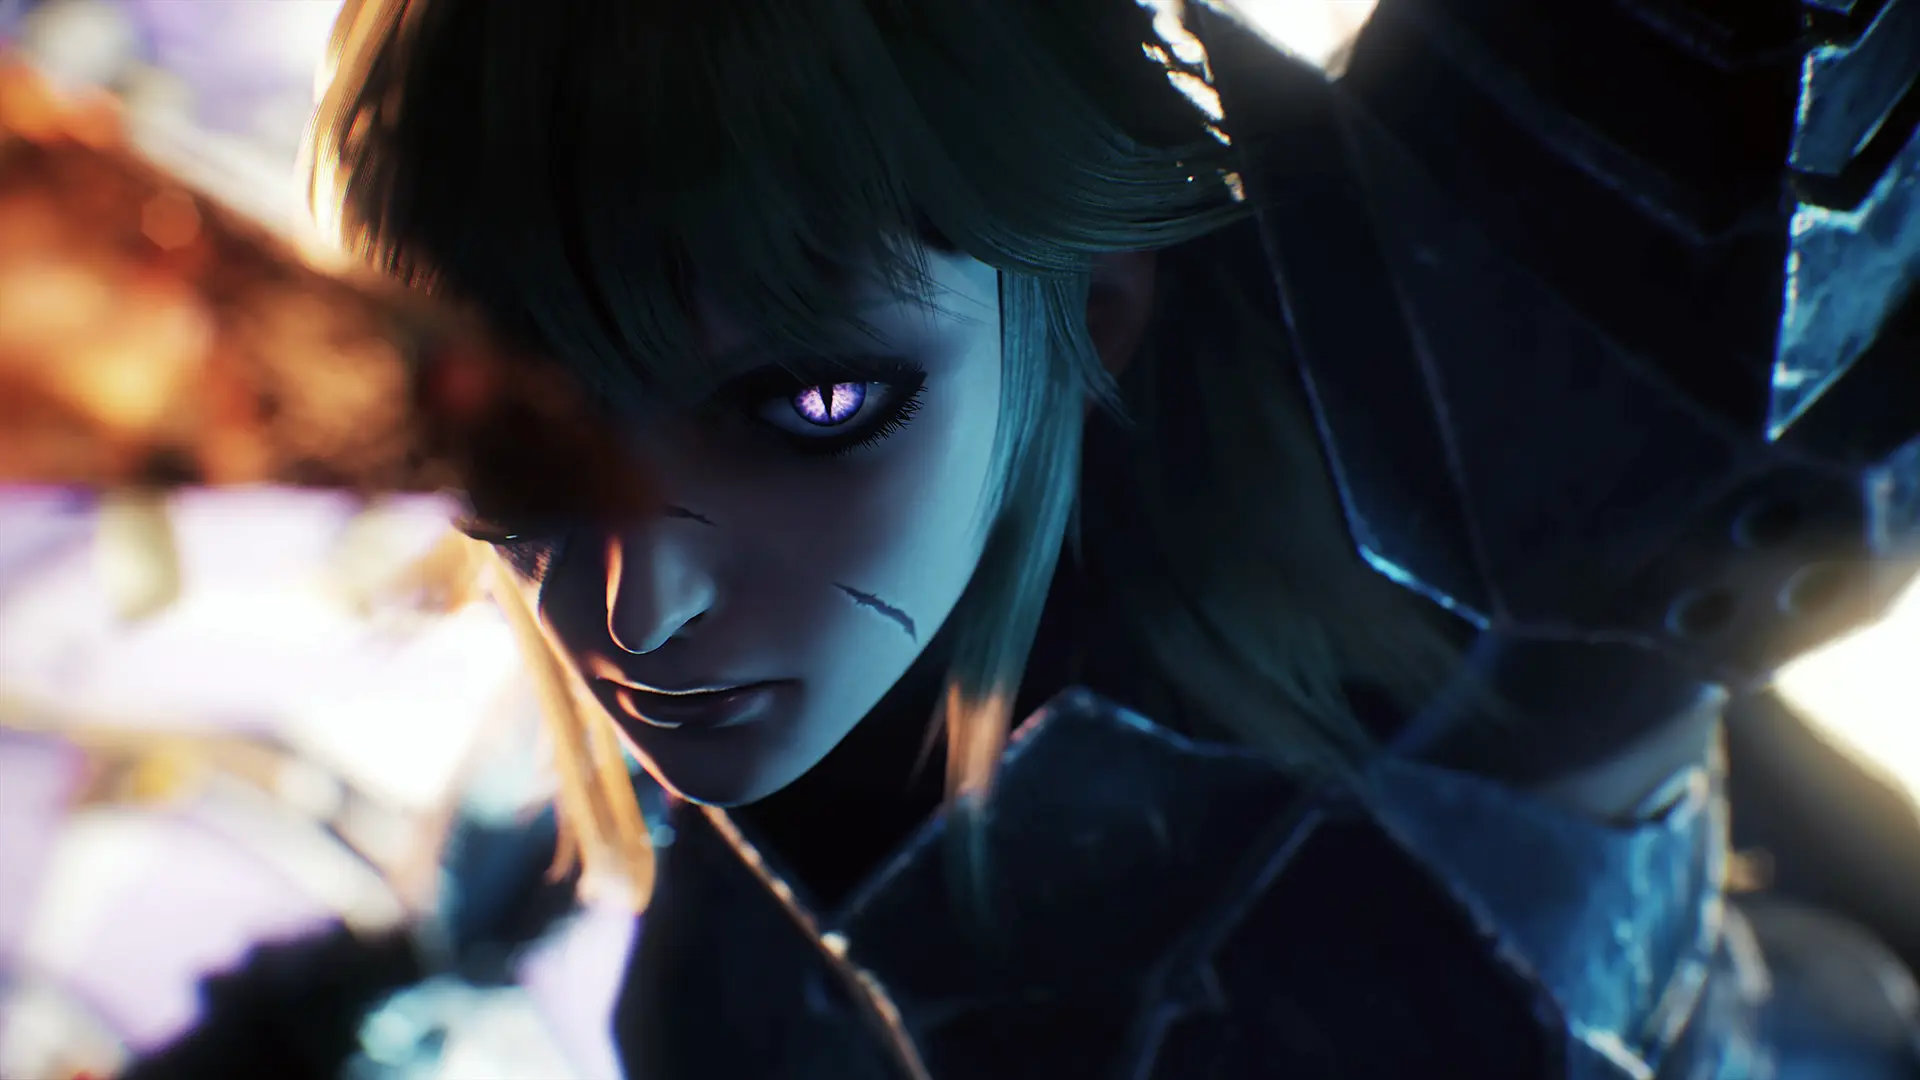 Soulstice artwork of a female warrior with glowing purple feline-like eyes and a scar across her face.